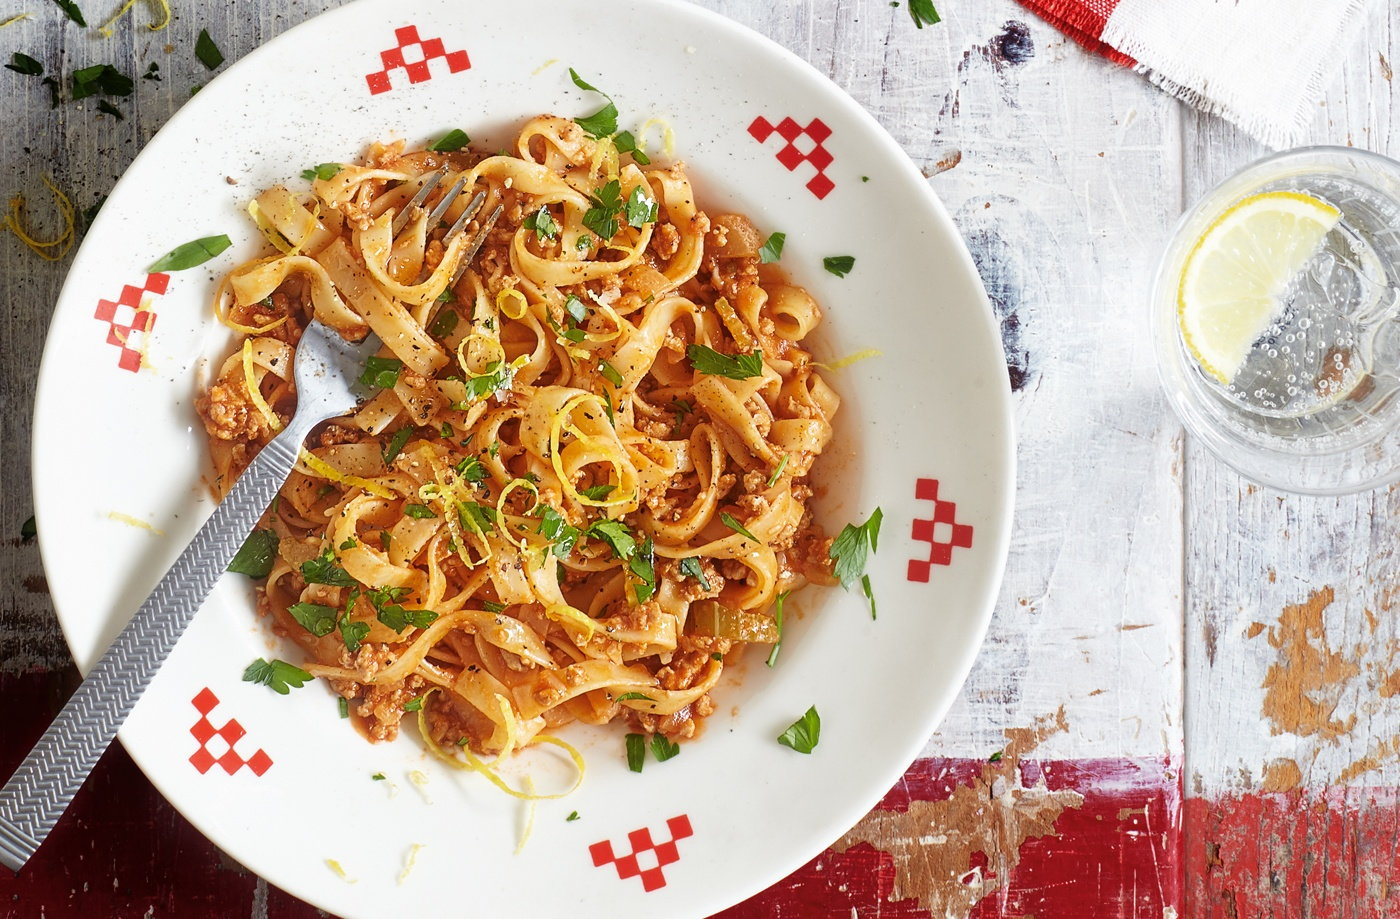 Pork and fennel ragu recipe